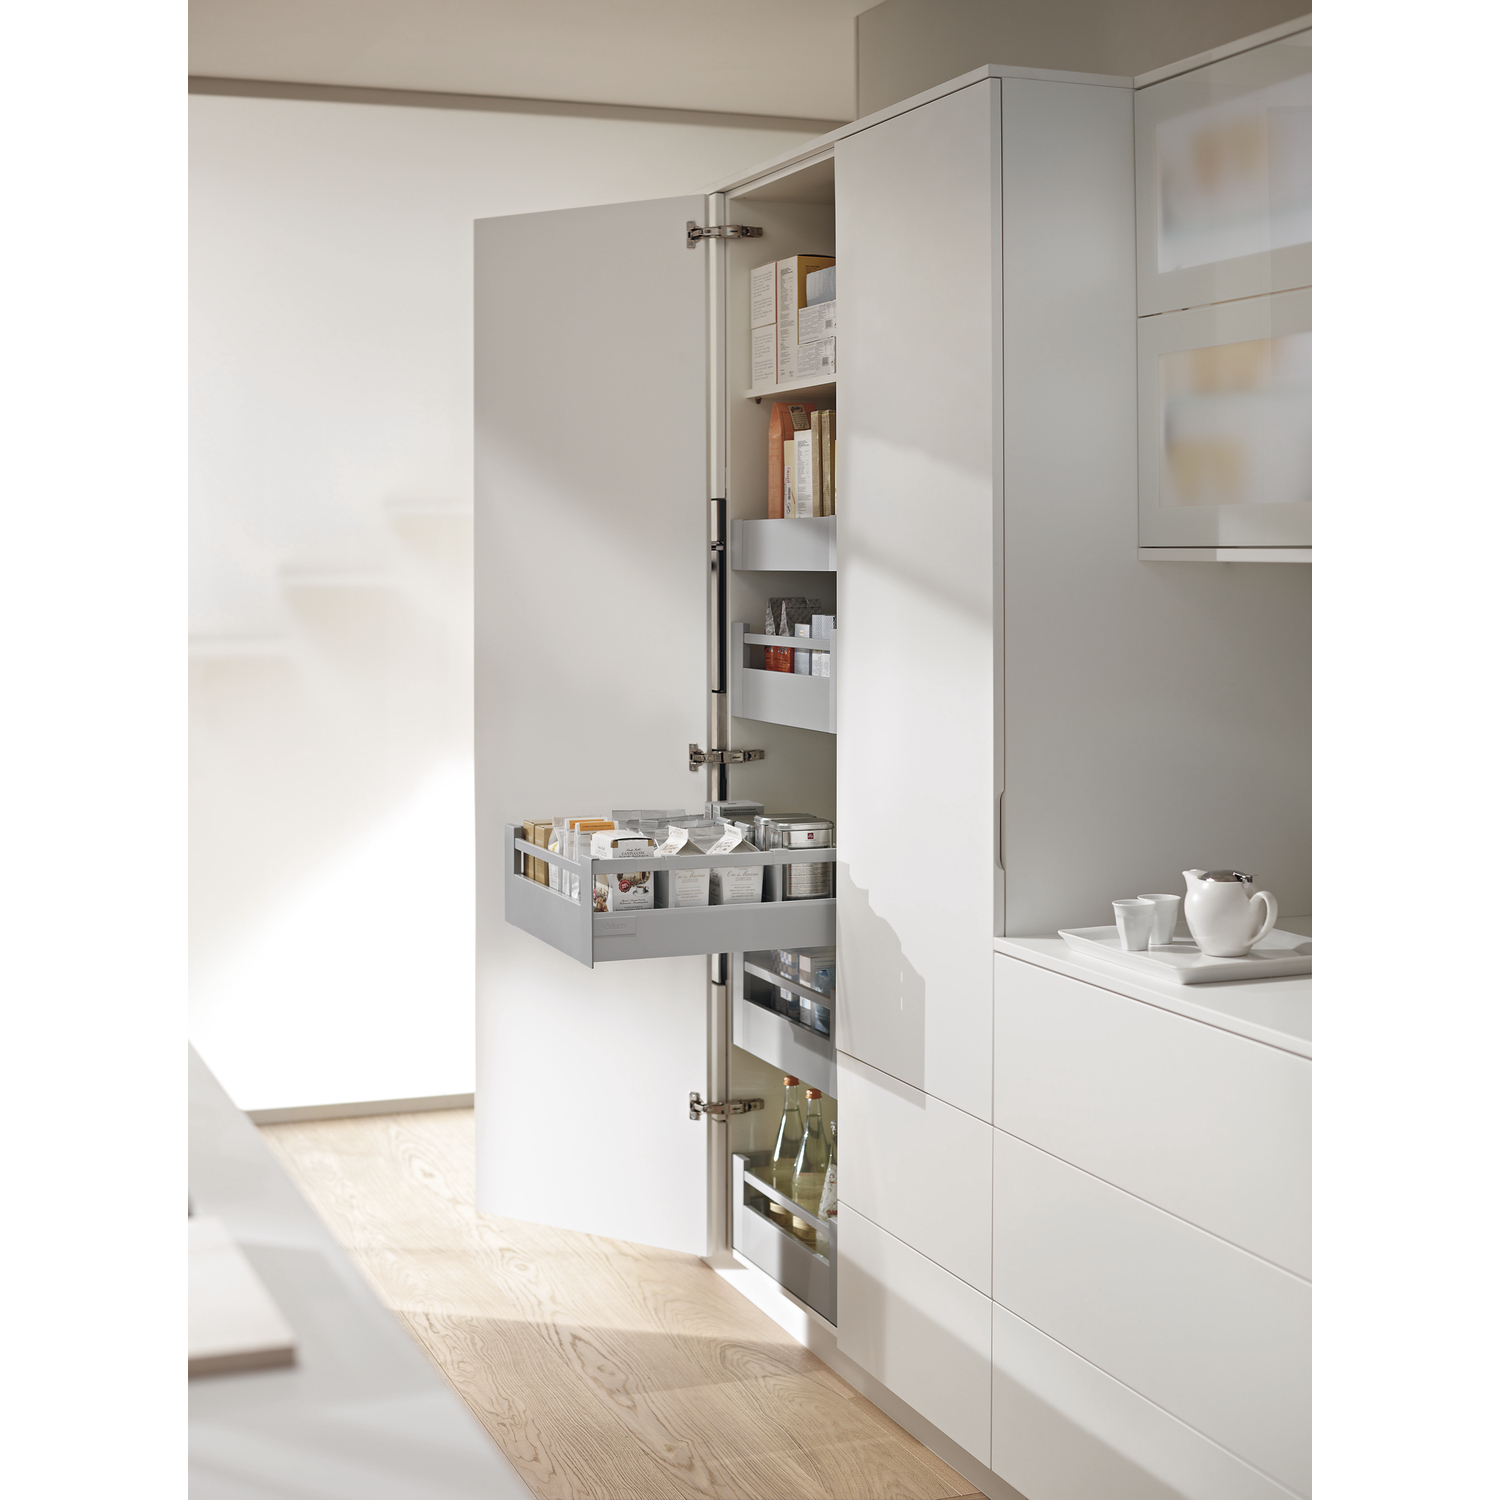 blum space tower tandembox antaro korl ttal nl500 korpuszsz l 450 sz rke. Black Bedroom Furniture Sets. Home Design Ideas